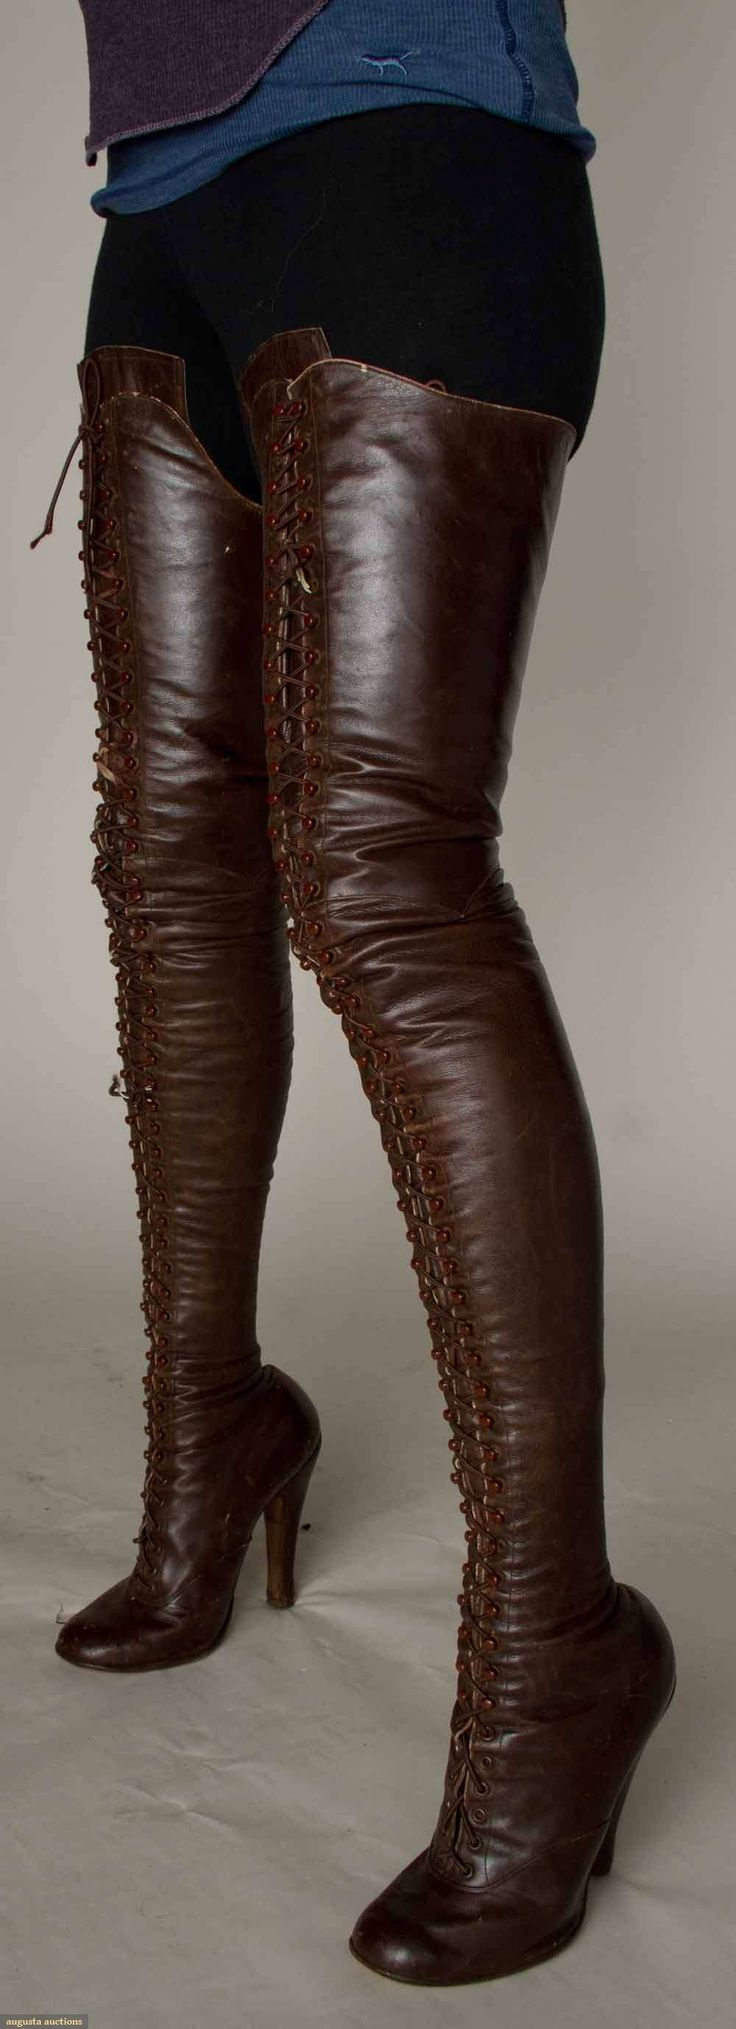 pair of ladies fetish boots in brown leather, c. 1890